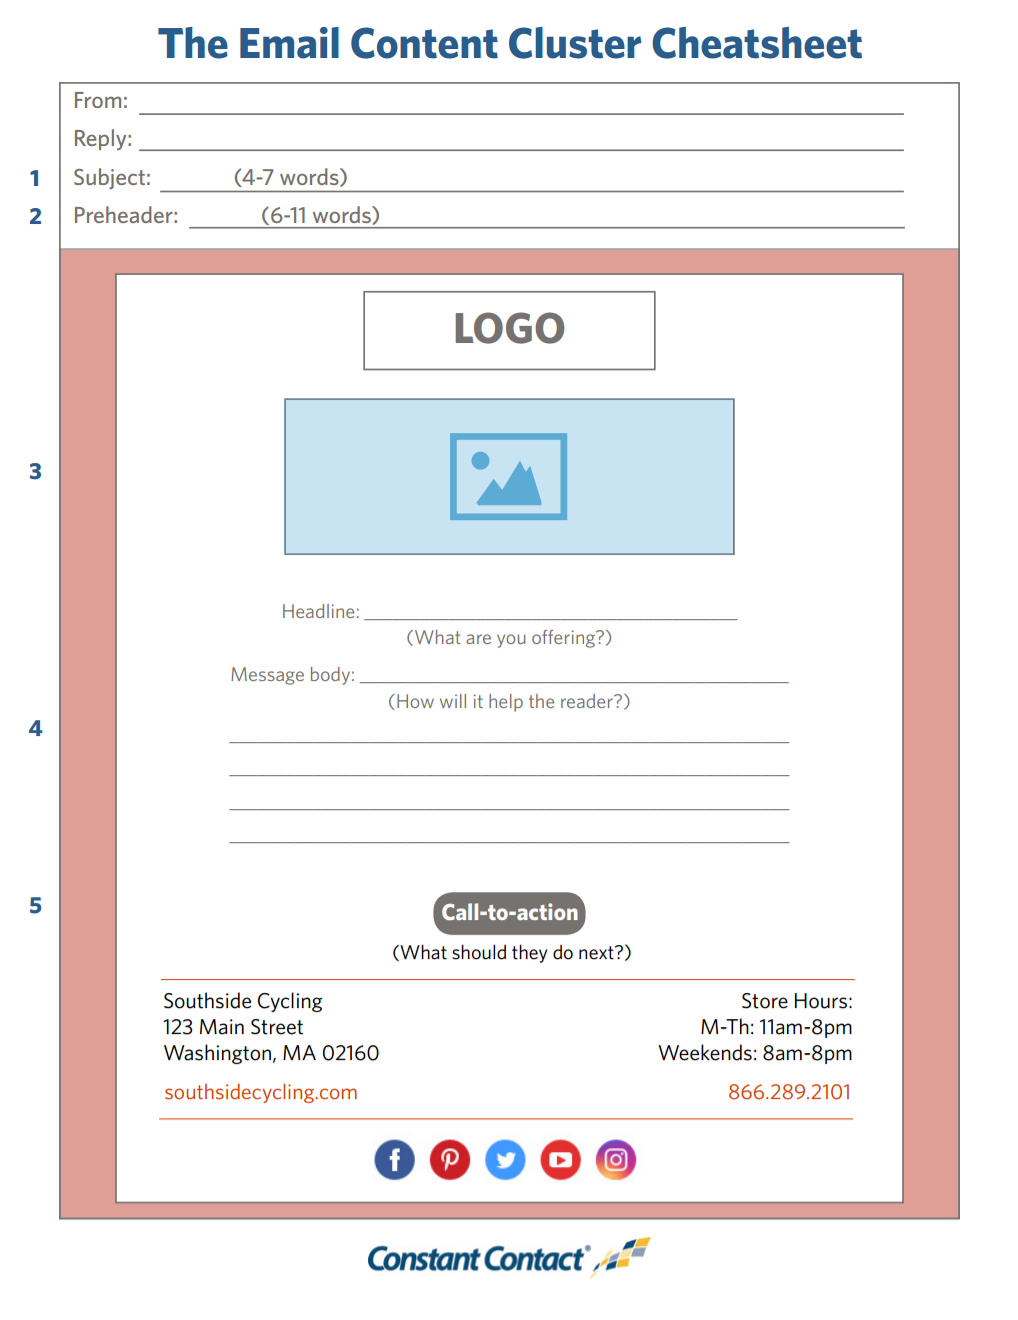 Worksheet] How to Write Your Email in 27 Minutes  - Constant